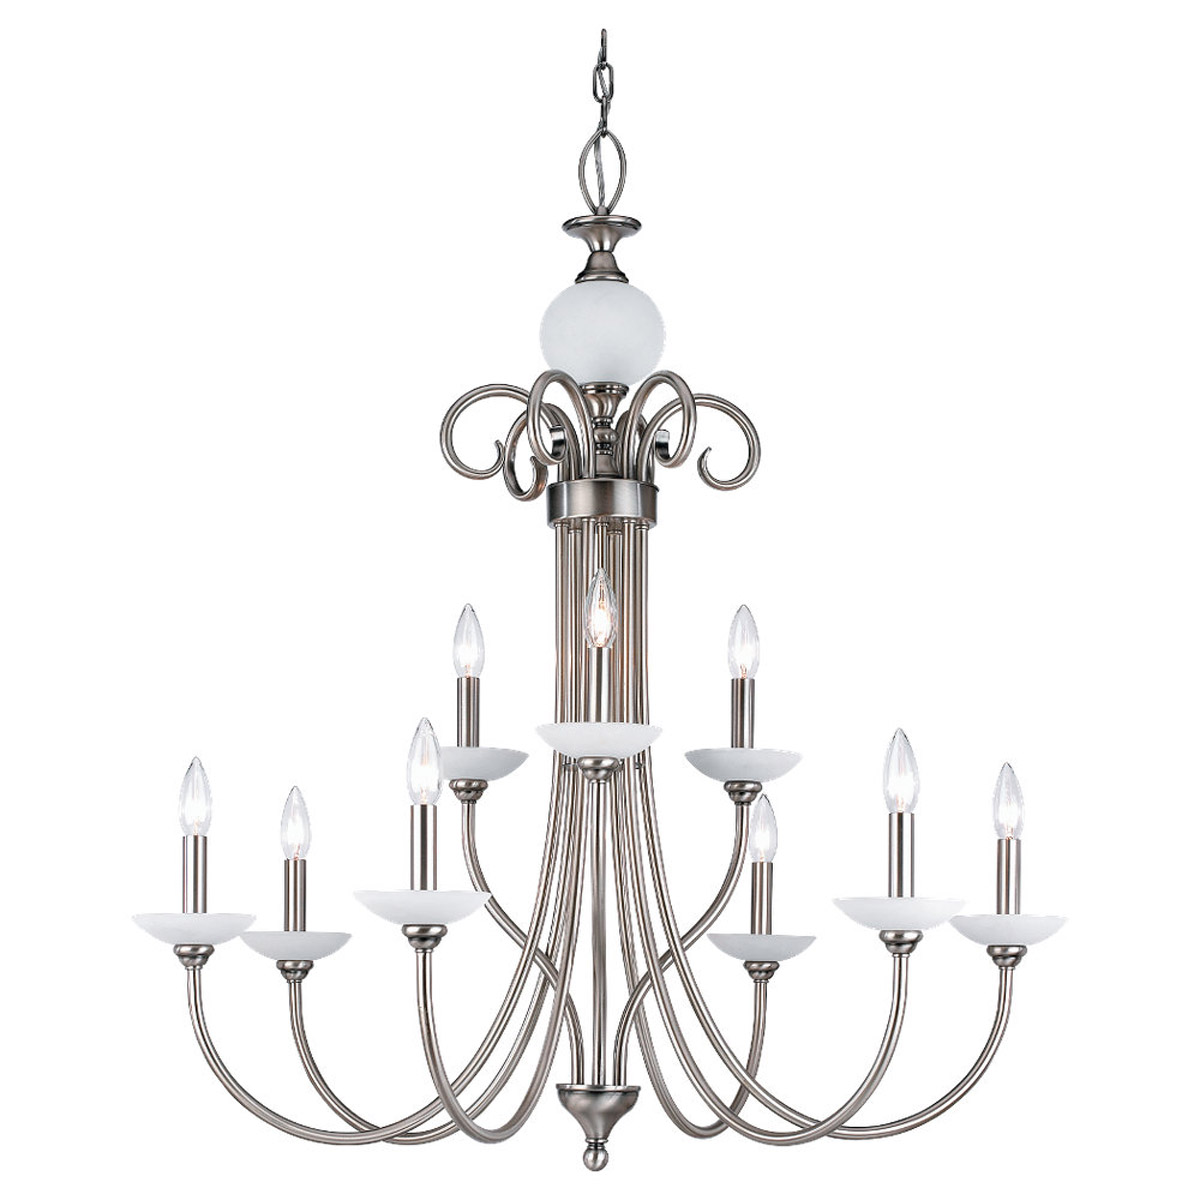 Sea Gull Lighting Montclaire 9 Light Chandelier in Antique Brushed Nickel 31108-965